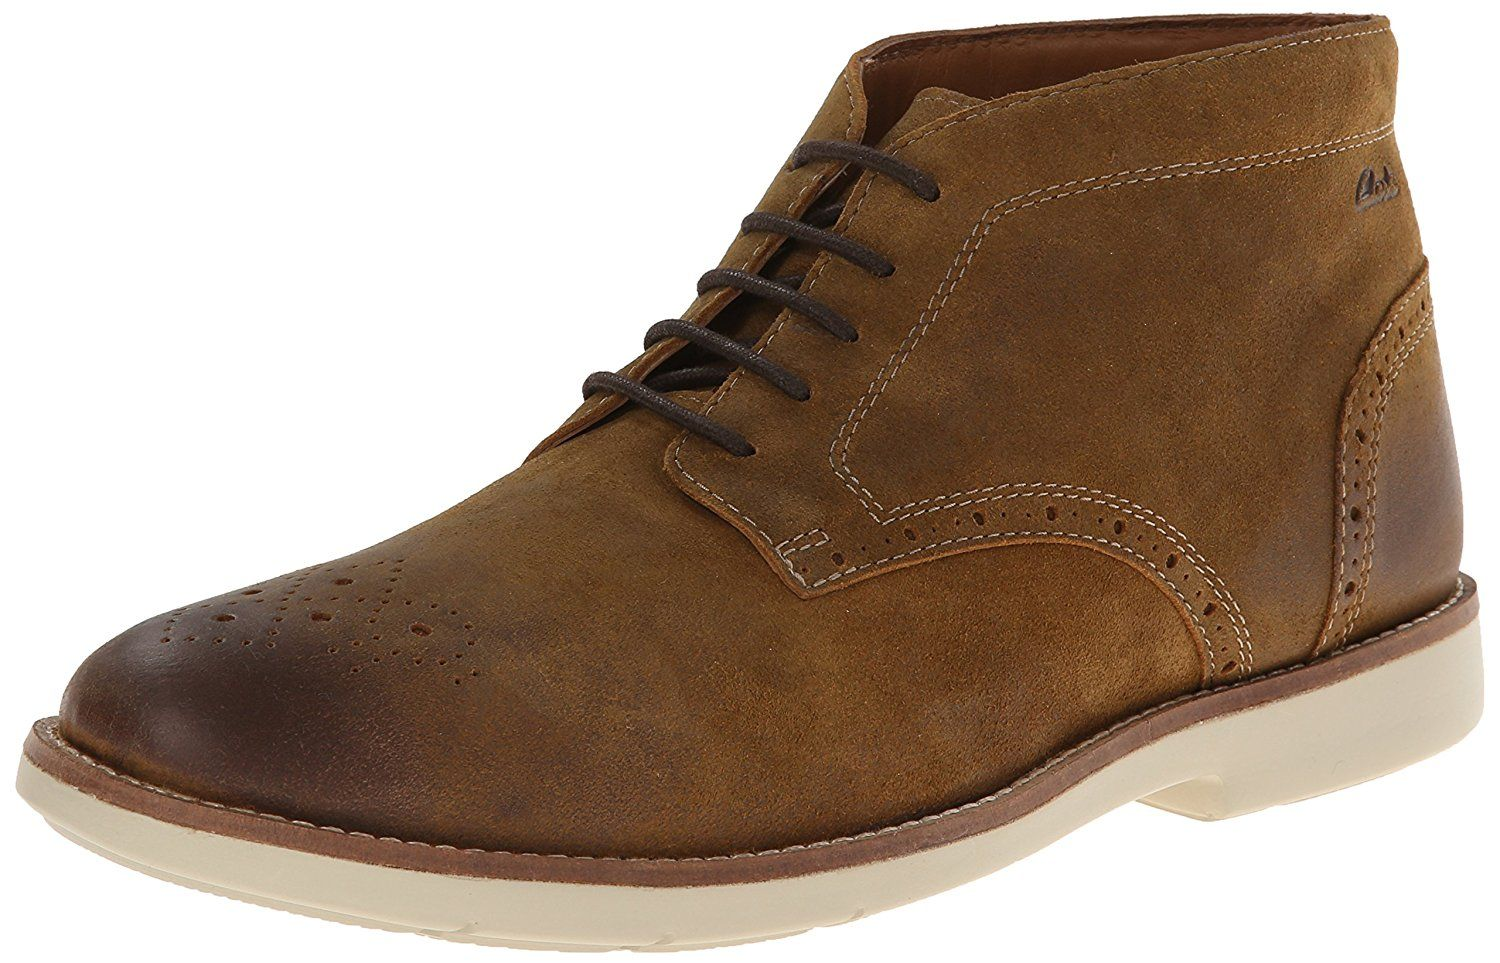 Raspin An Is Up Men's Clarks Amazon This Boot Lace Limit q5SxwCa